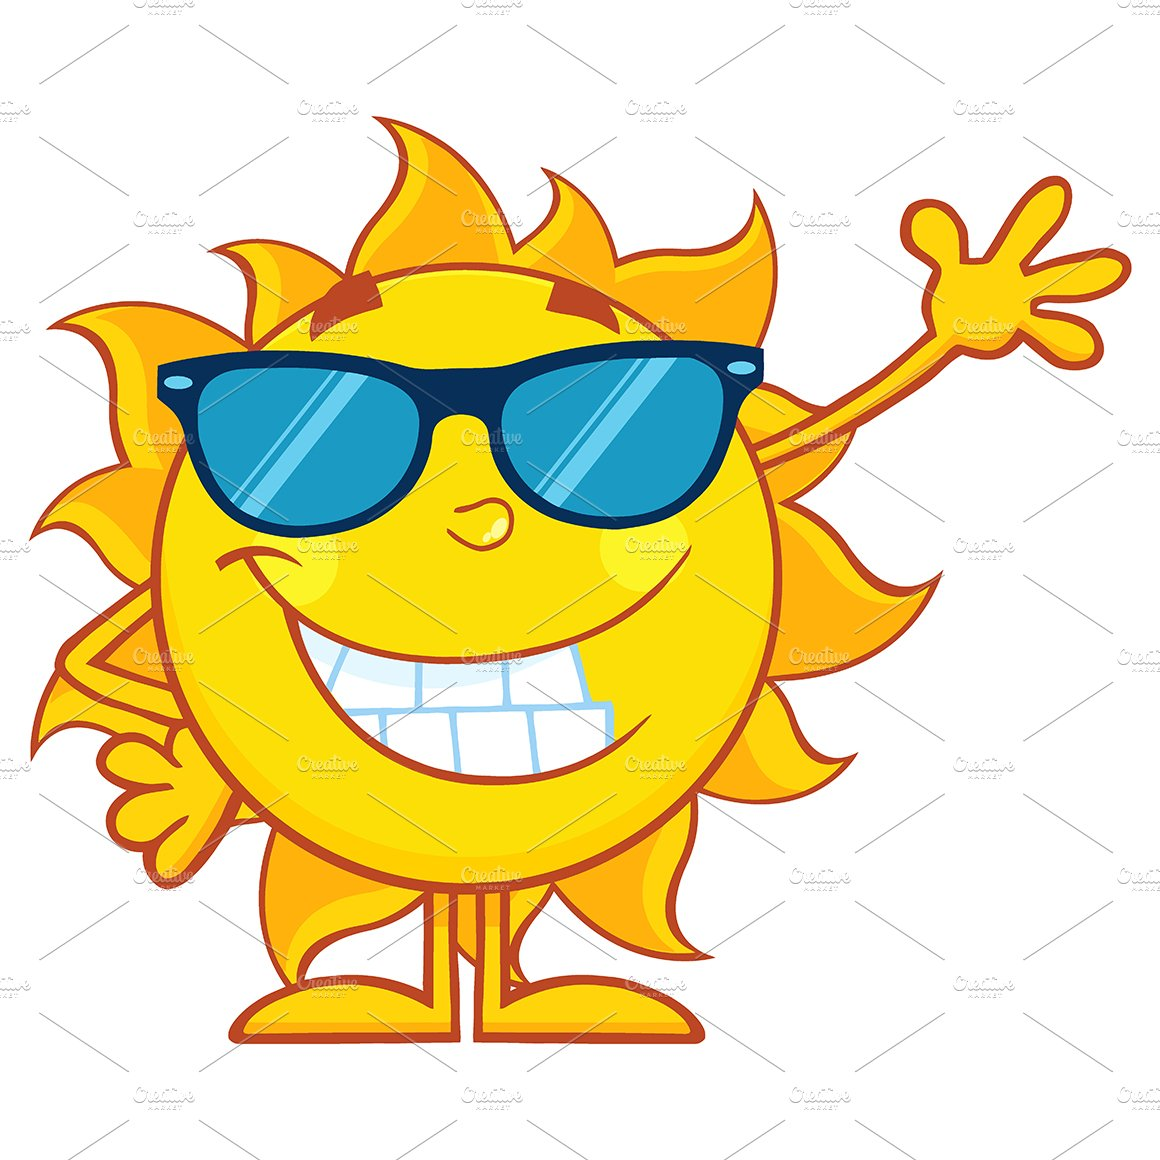 Smiling sun with sunglasses - Smiling Sun With Sunglasses 24